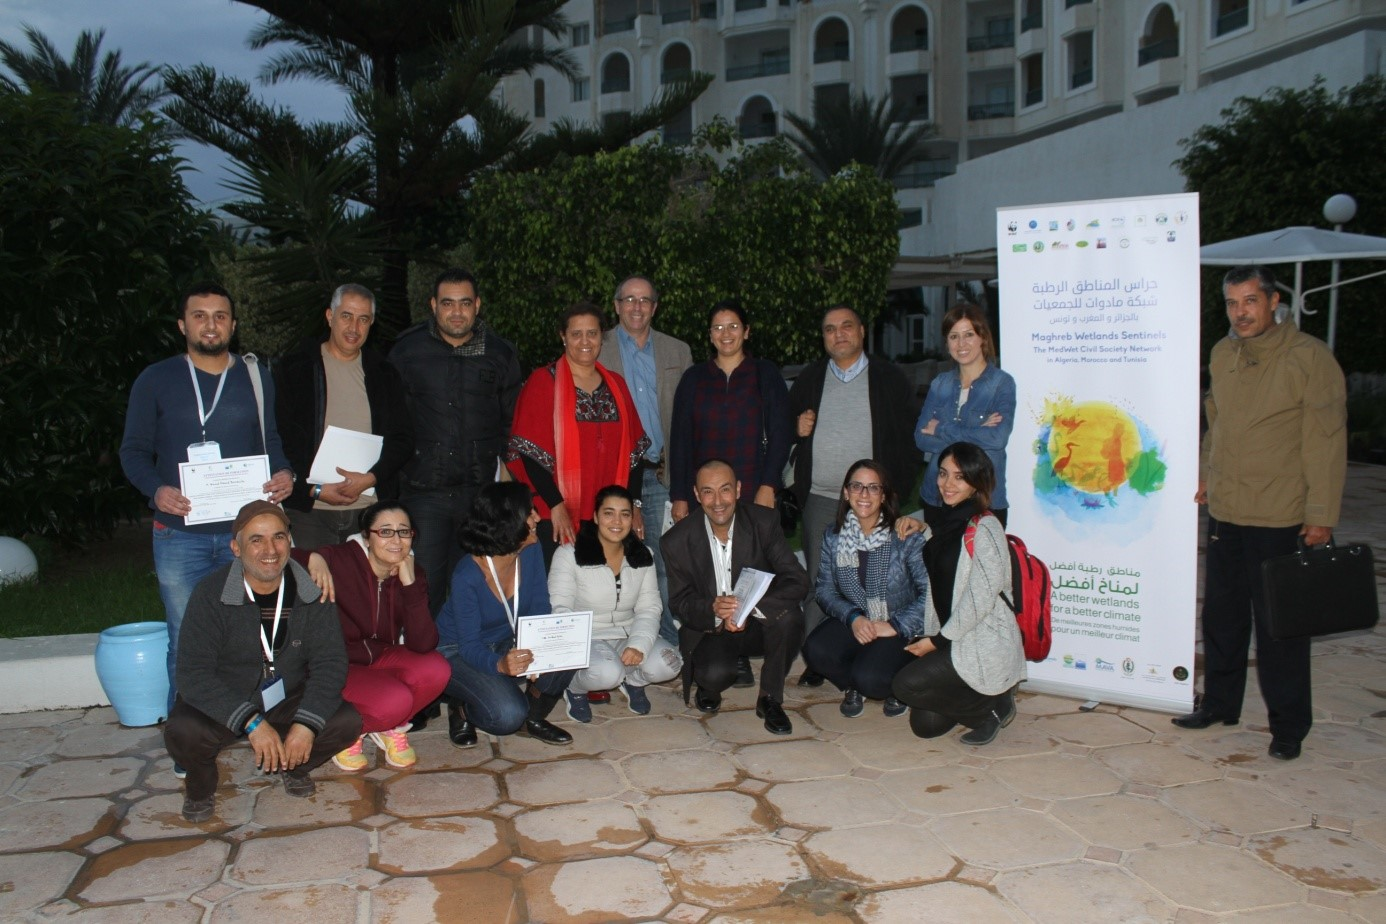 groupe-formation-tunisie-hammamet-dec-16